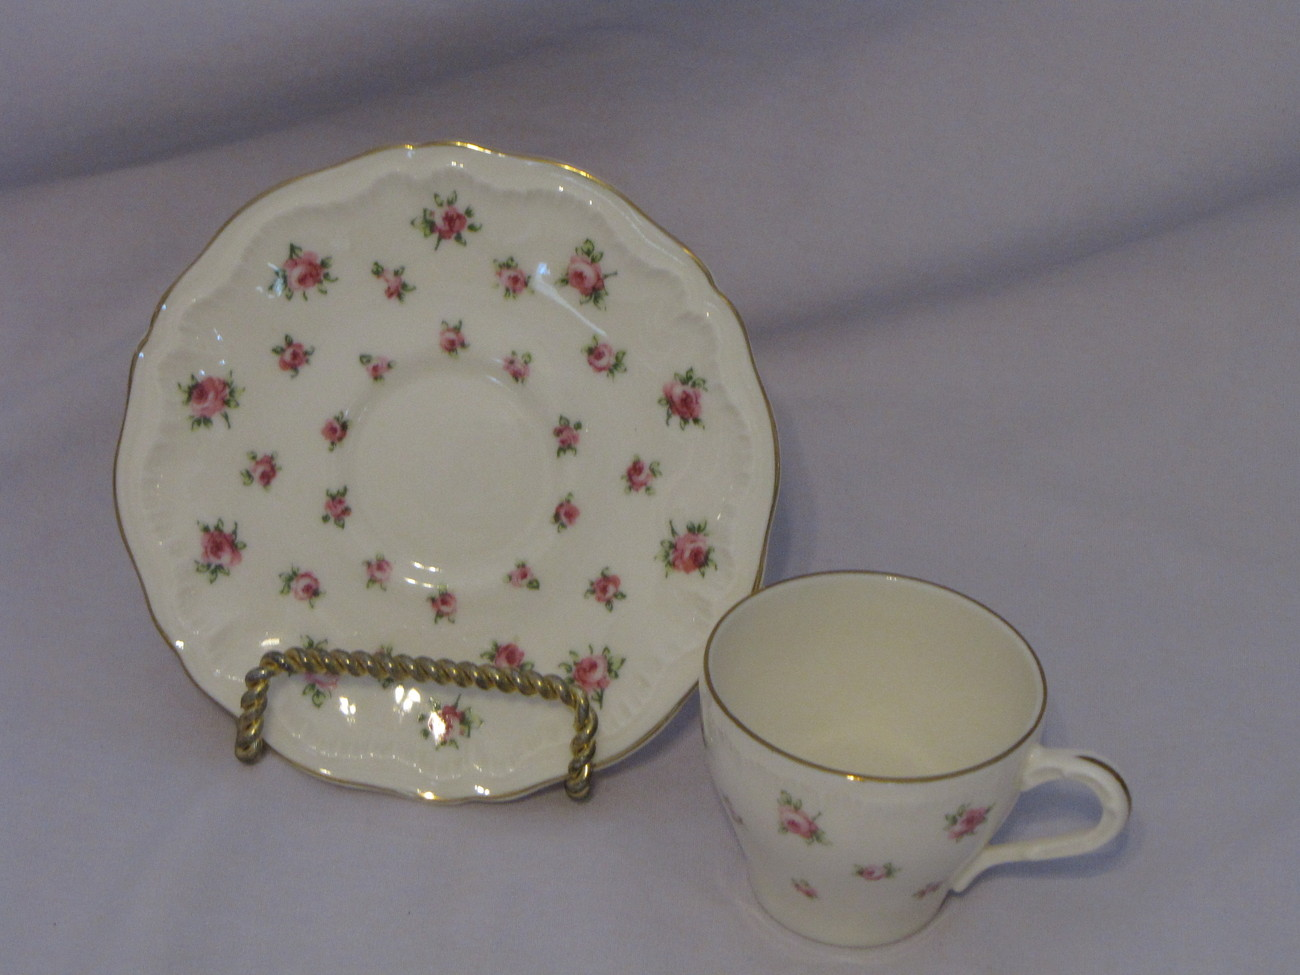 Theodore Haviland New York Georgia Demitasse Cup and Saucer - $20.00